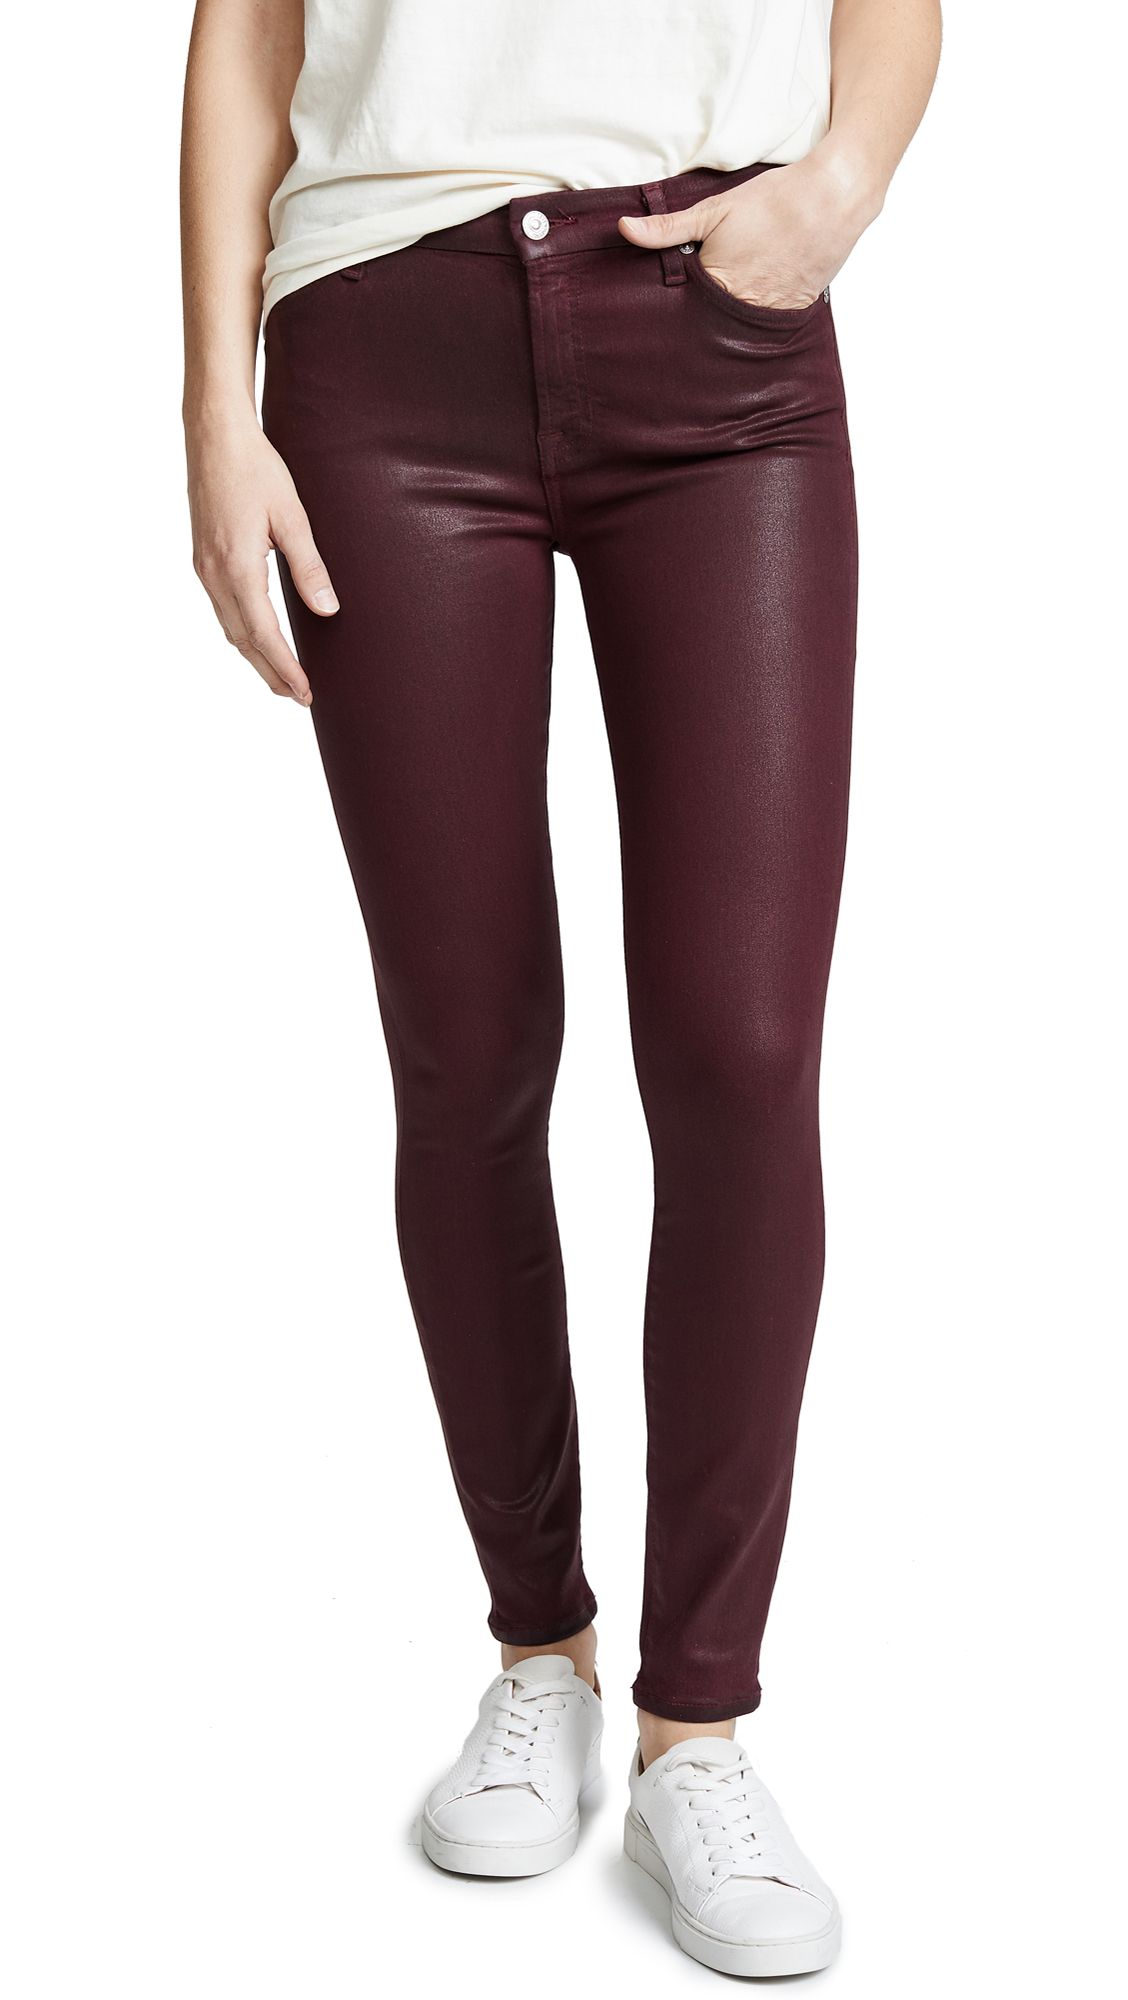 The Coated Ankle Skinny Jeans